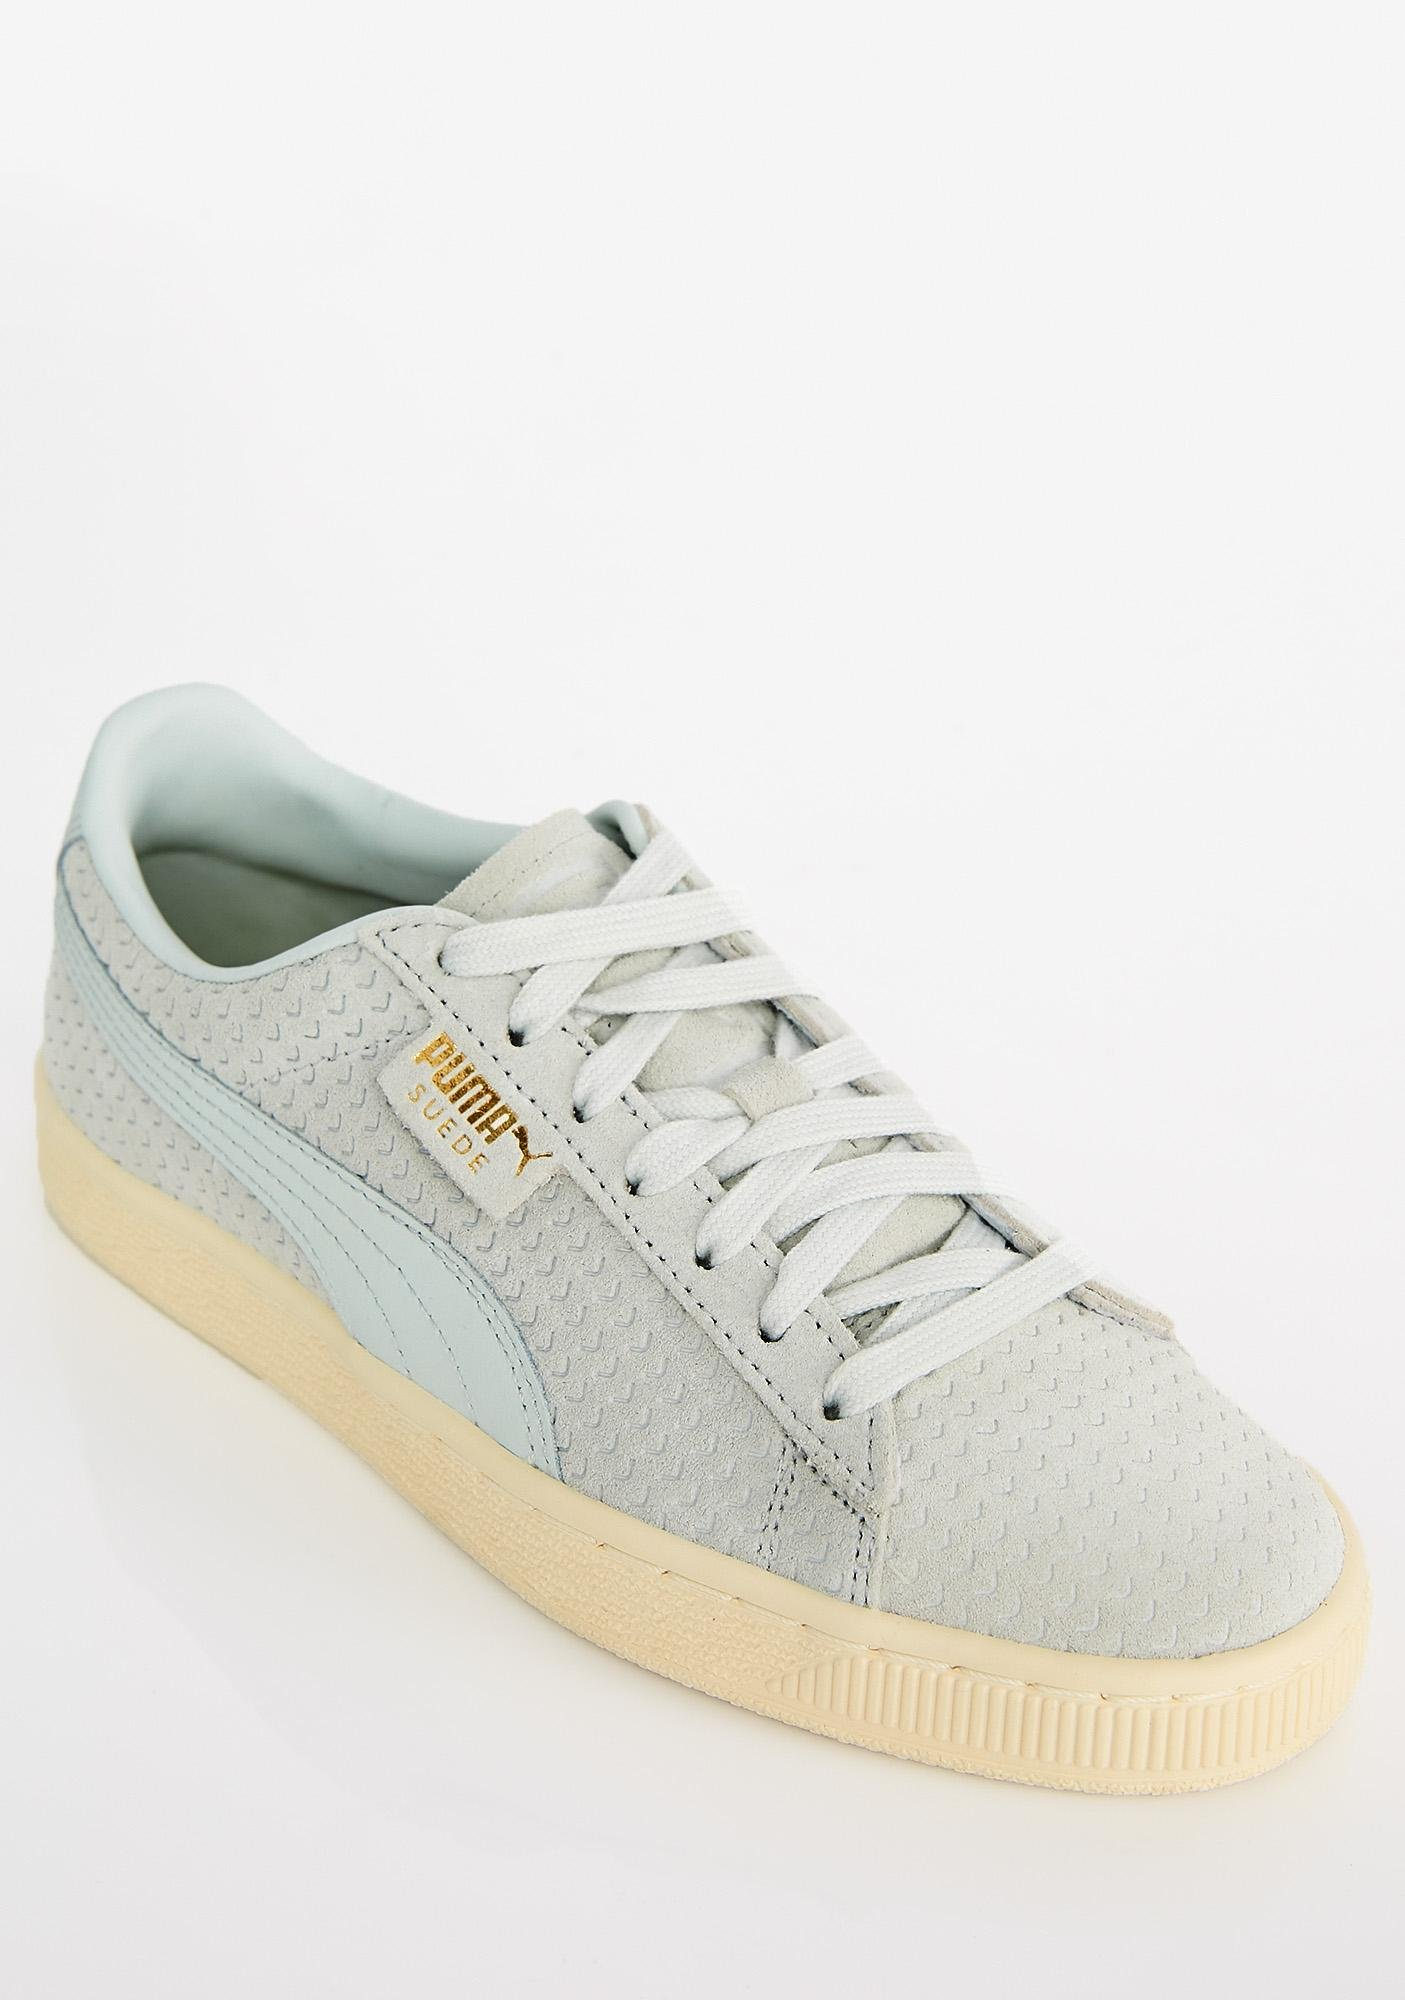 PUMA Suede Classic Perforation Sneakers